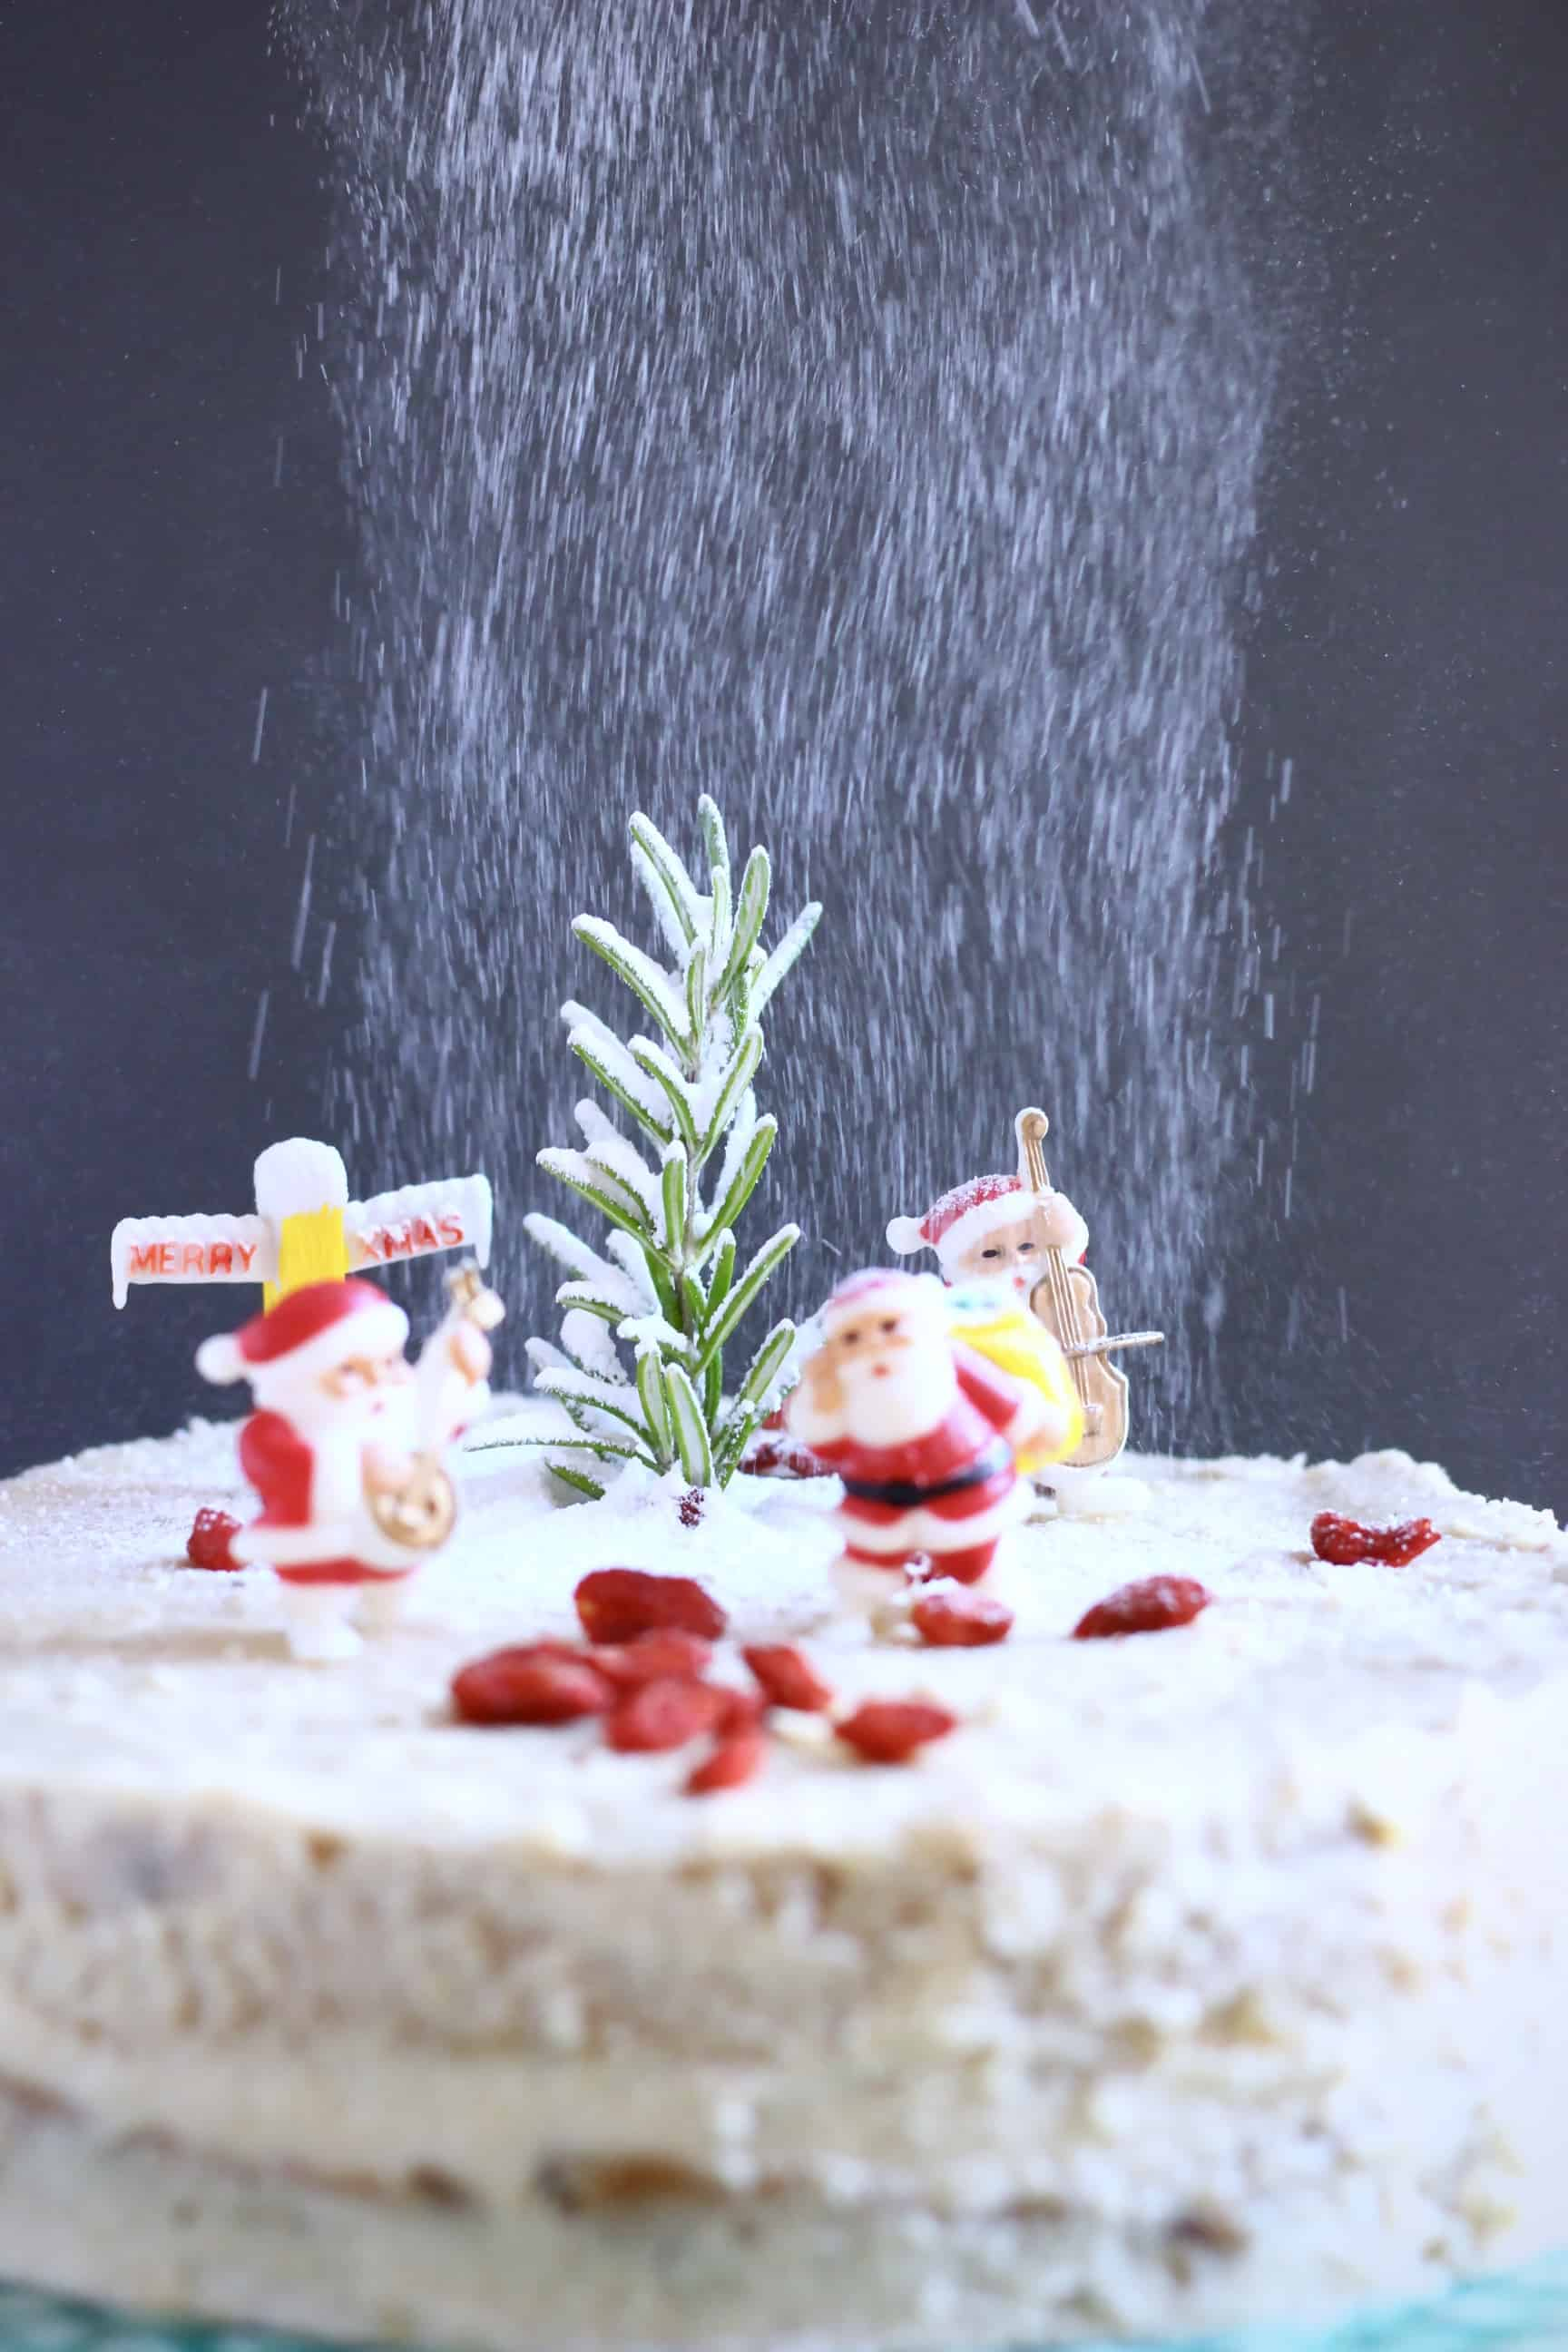 A gluten-free vegan Christmas fruit cake covered in white buttercream topped with plastic santas against a grey background with icing sugar being dusted over it